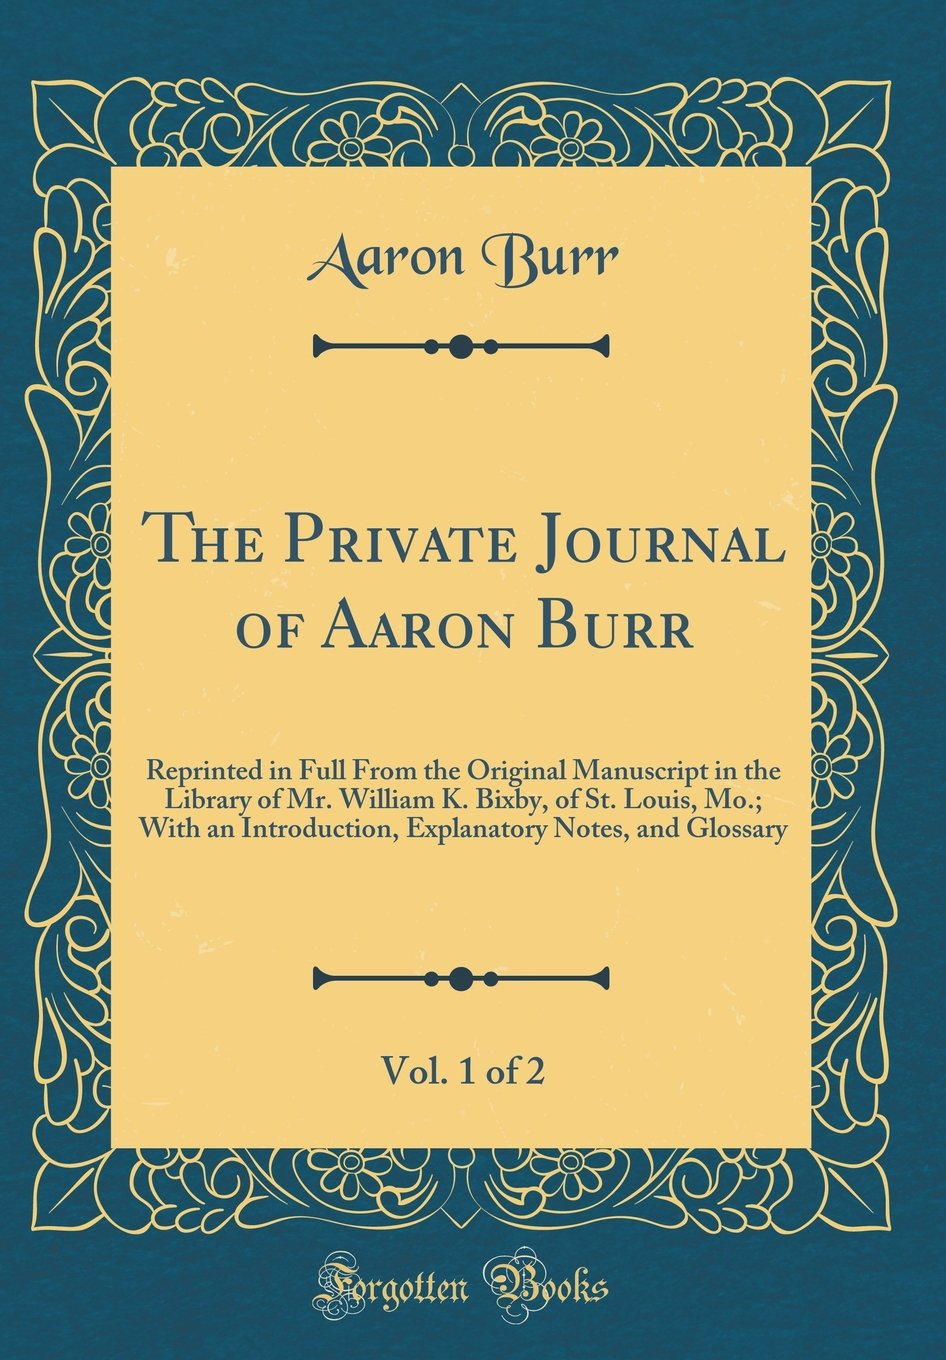 The Private Journal of Aaron Burr, Vol. 1 of 2: Reprinted in Full From the Original Manuscript in the Library of Mr. William K. Bixby, of St. Louis, ... Notes, and Glossary (Classic Reprint) pdf